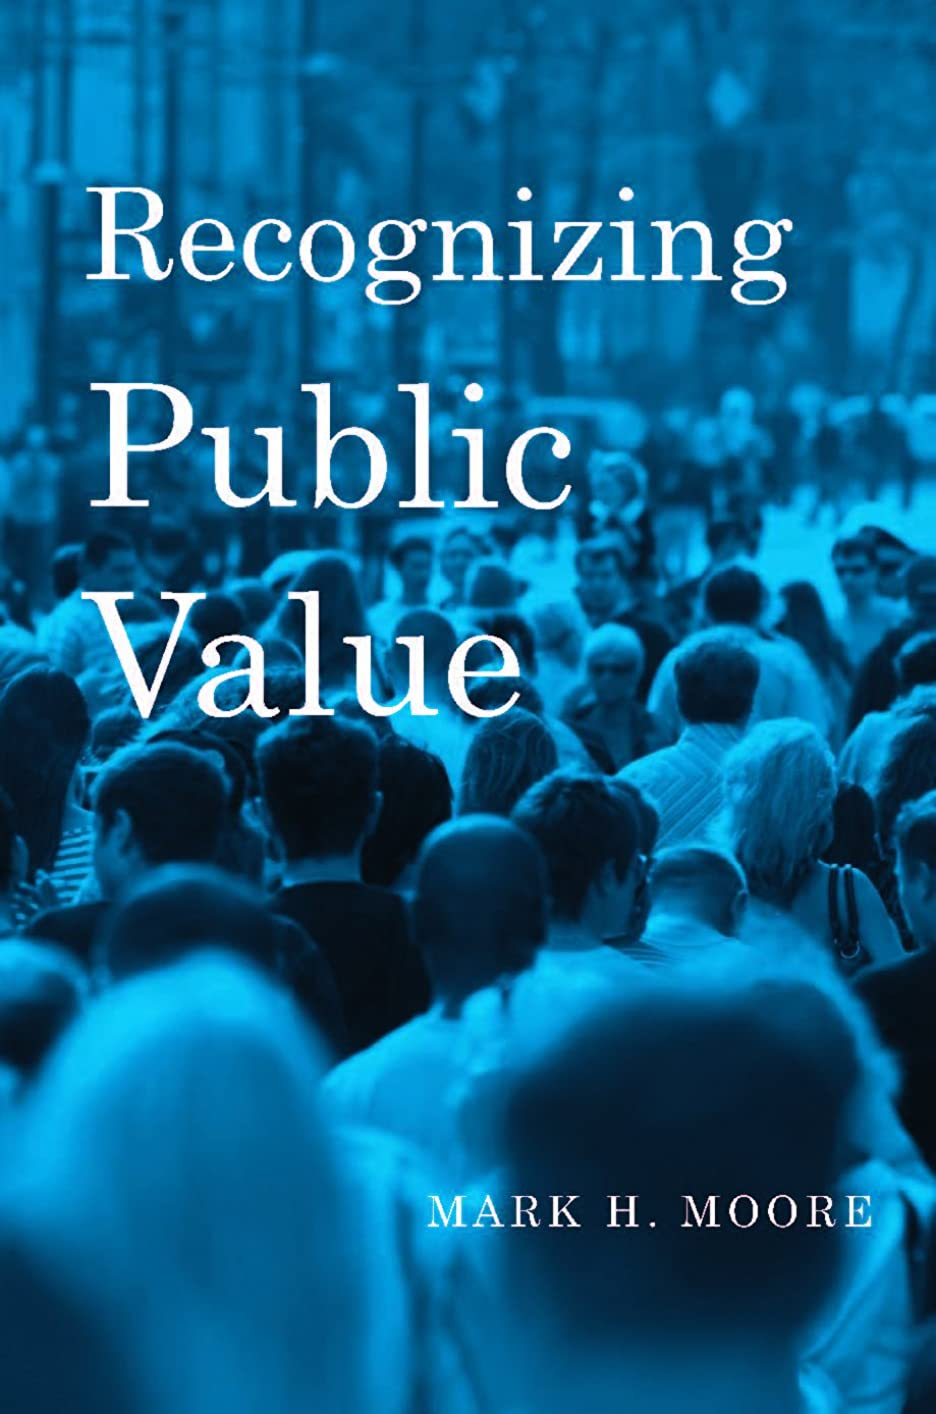 インターネット混乱した排気Recognizing Public Value (English Edition)